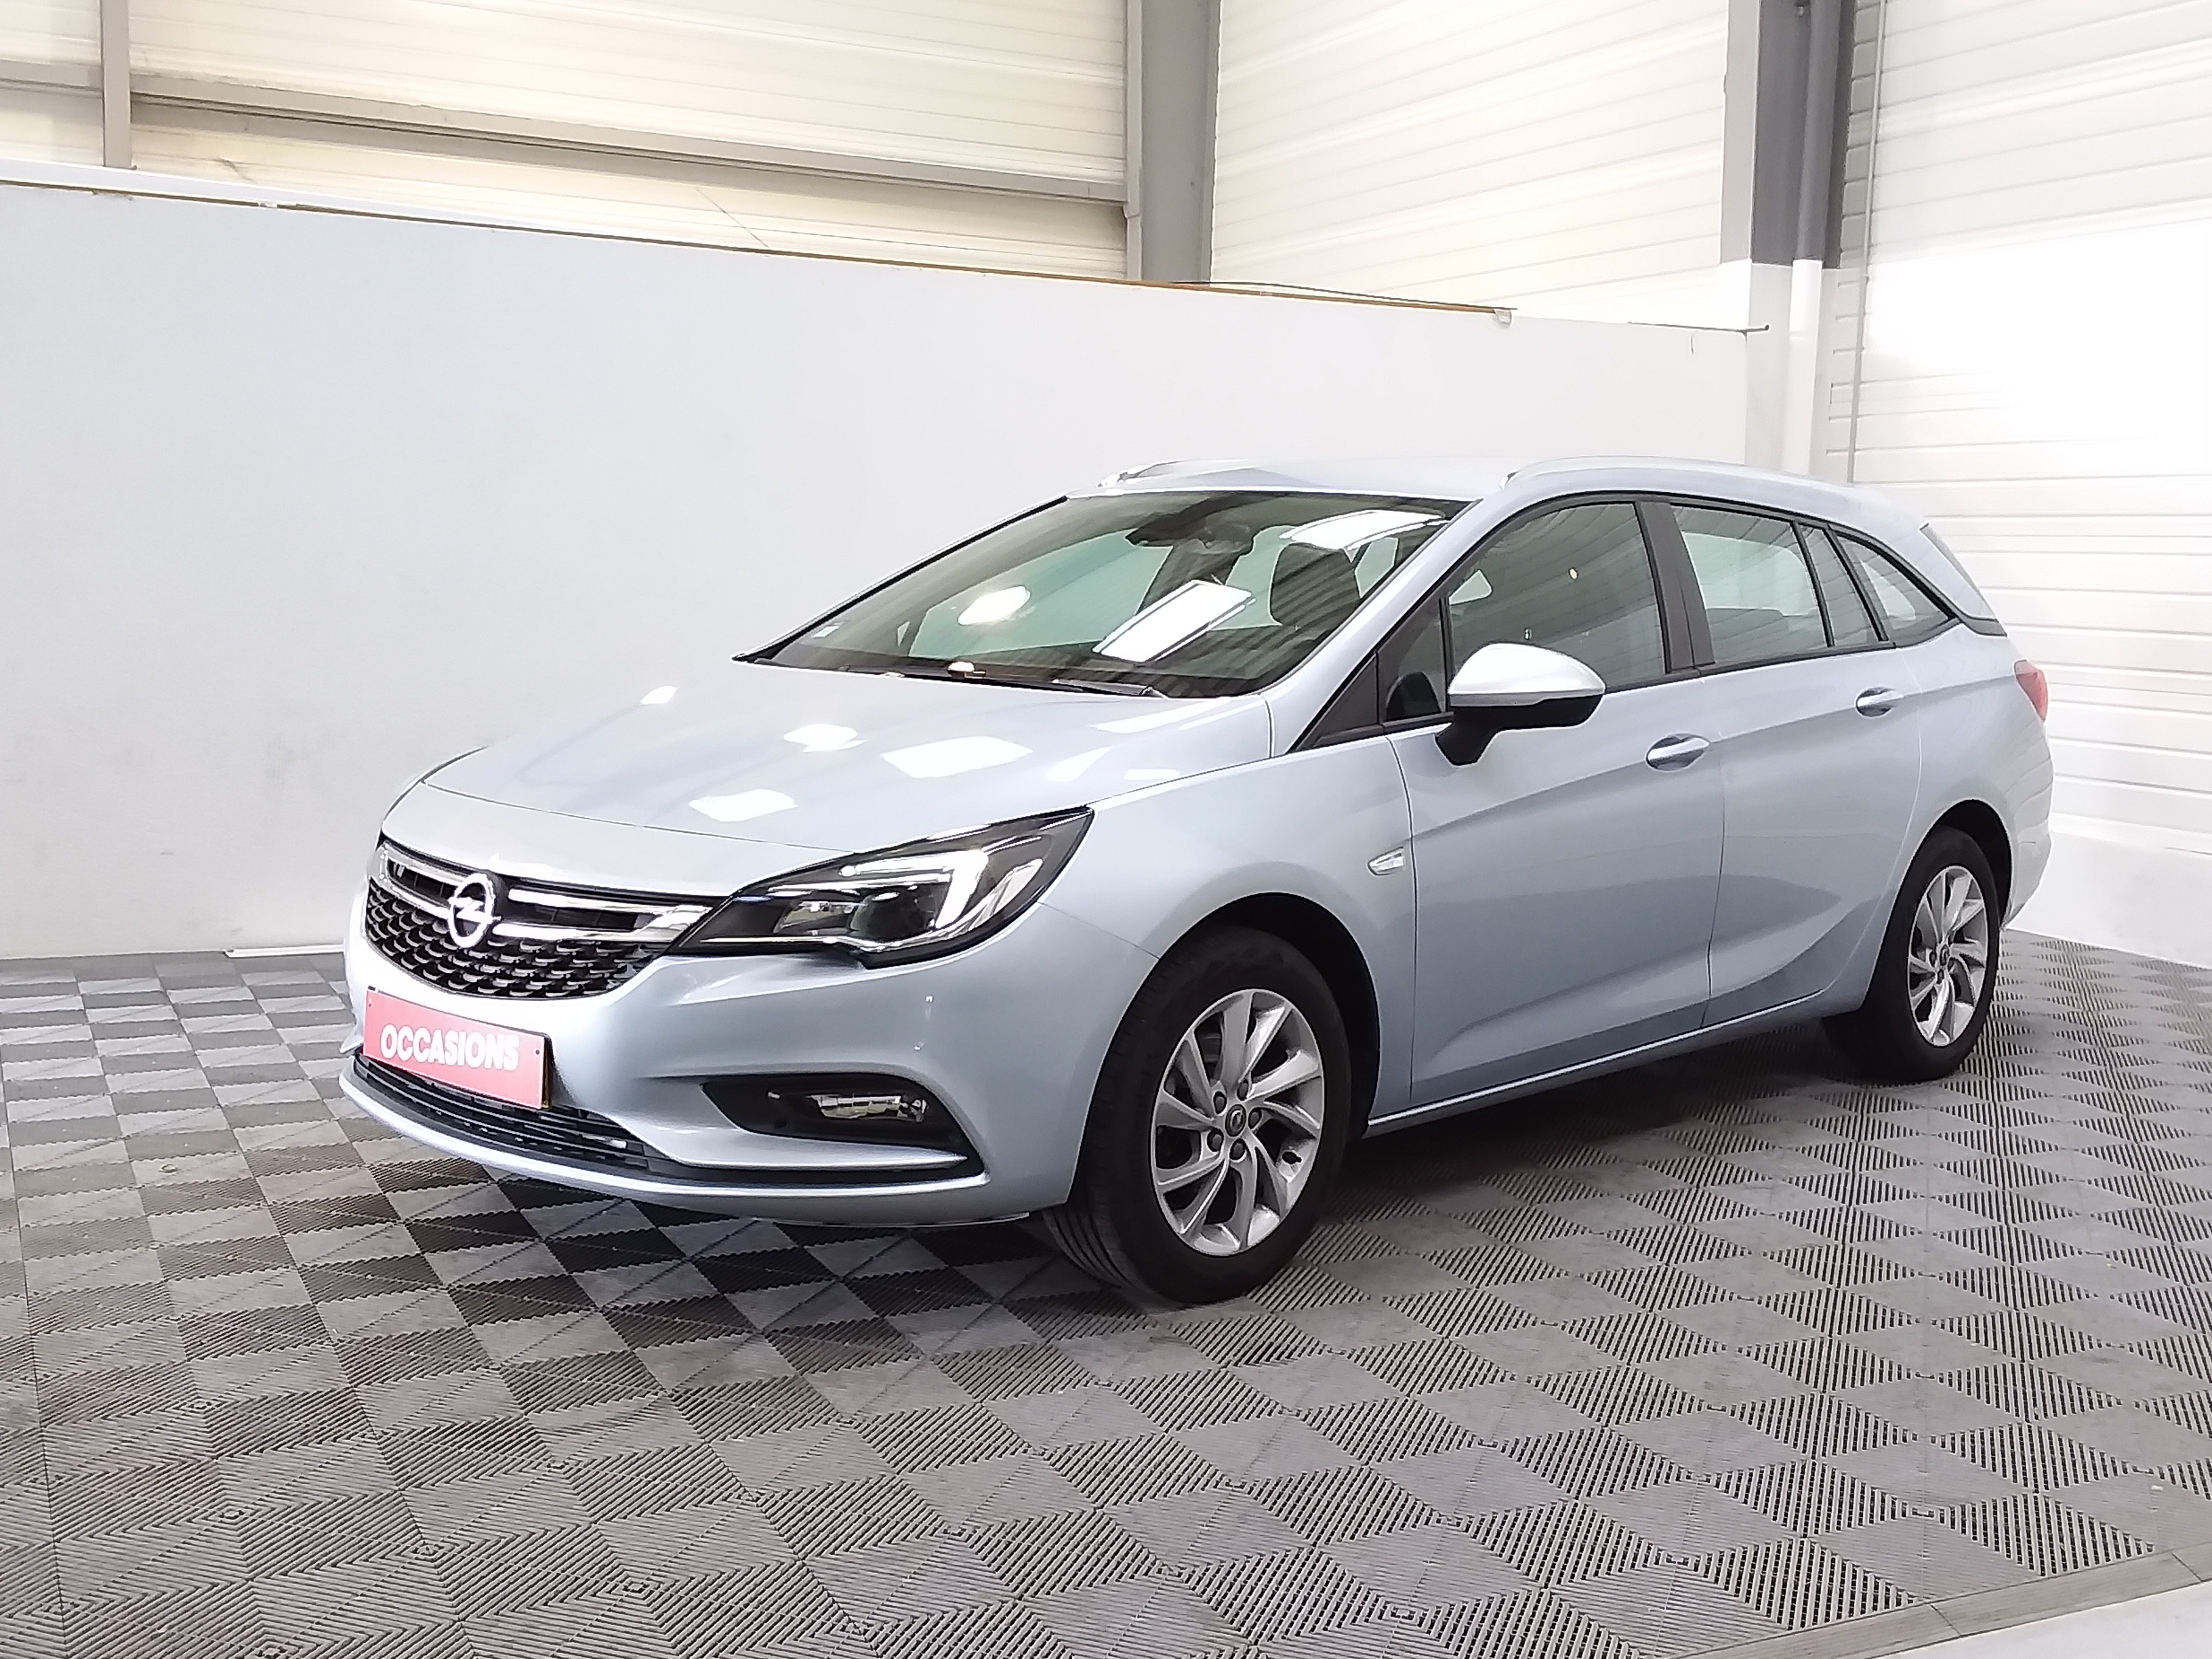 Photo du véhicule OPEL ASTRA SPORTS TOURER 1.6 CDTI 110 ch Start/Stop Edition